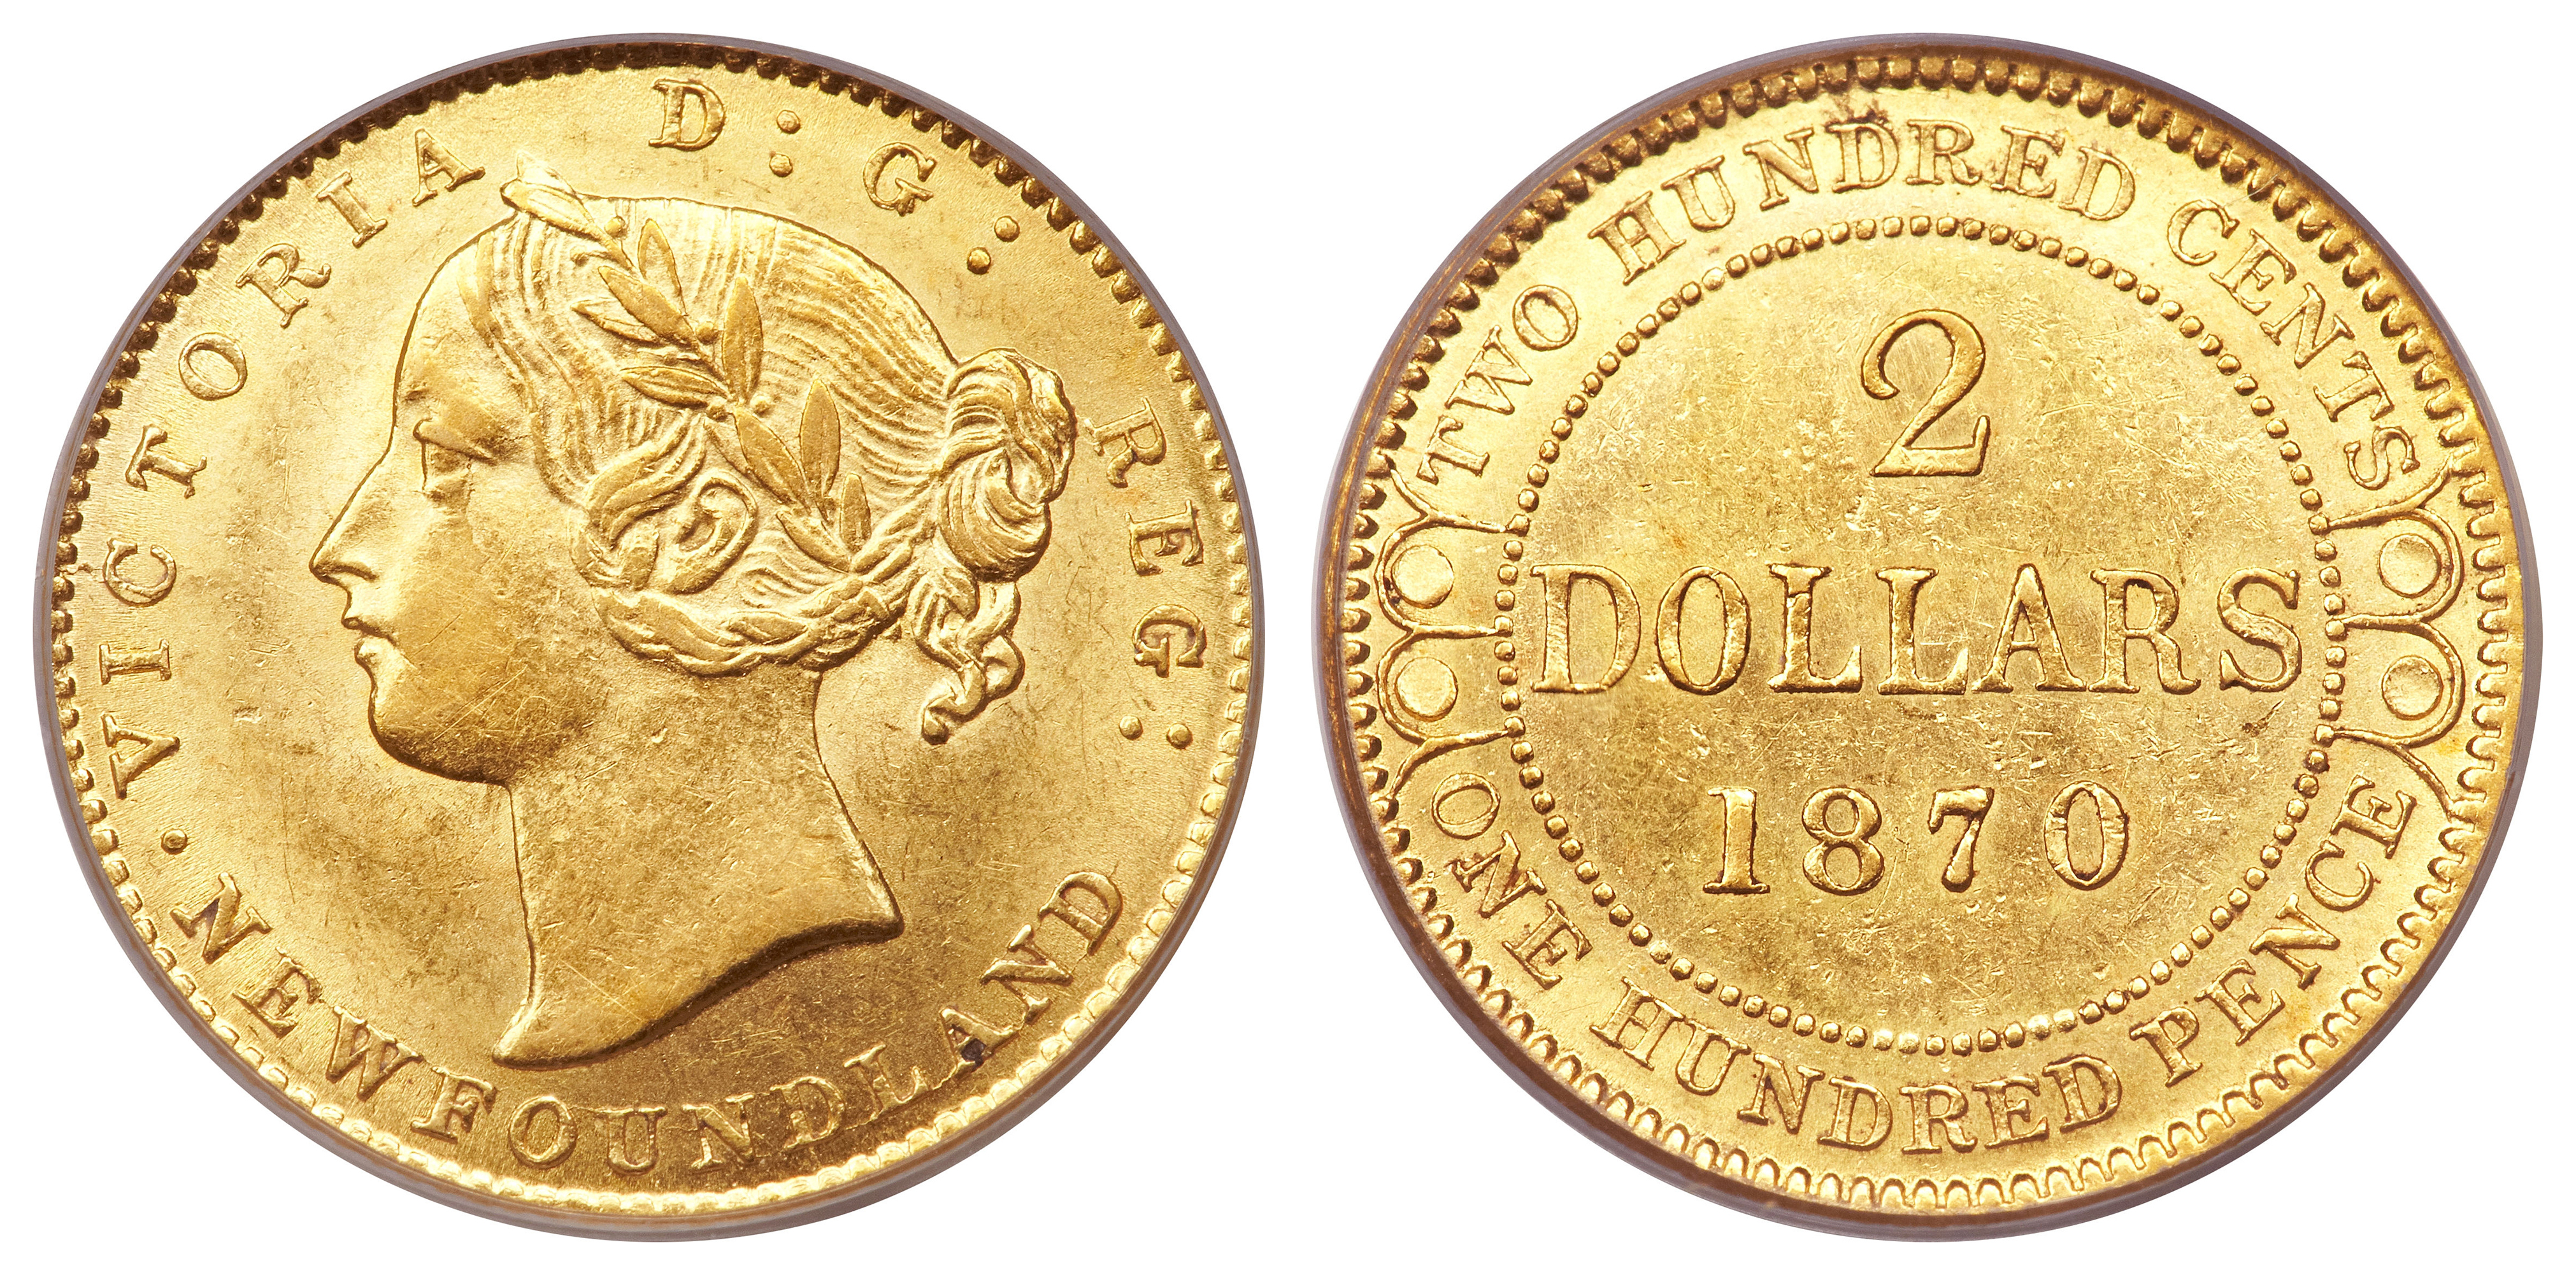 Newfoundland 2-dollar coin - Wikipedia